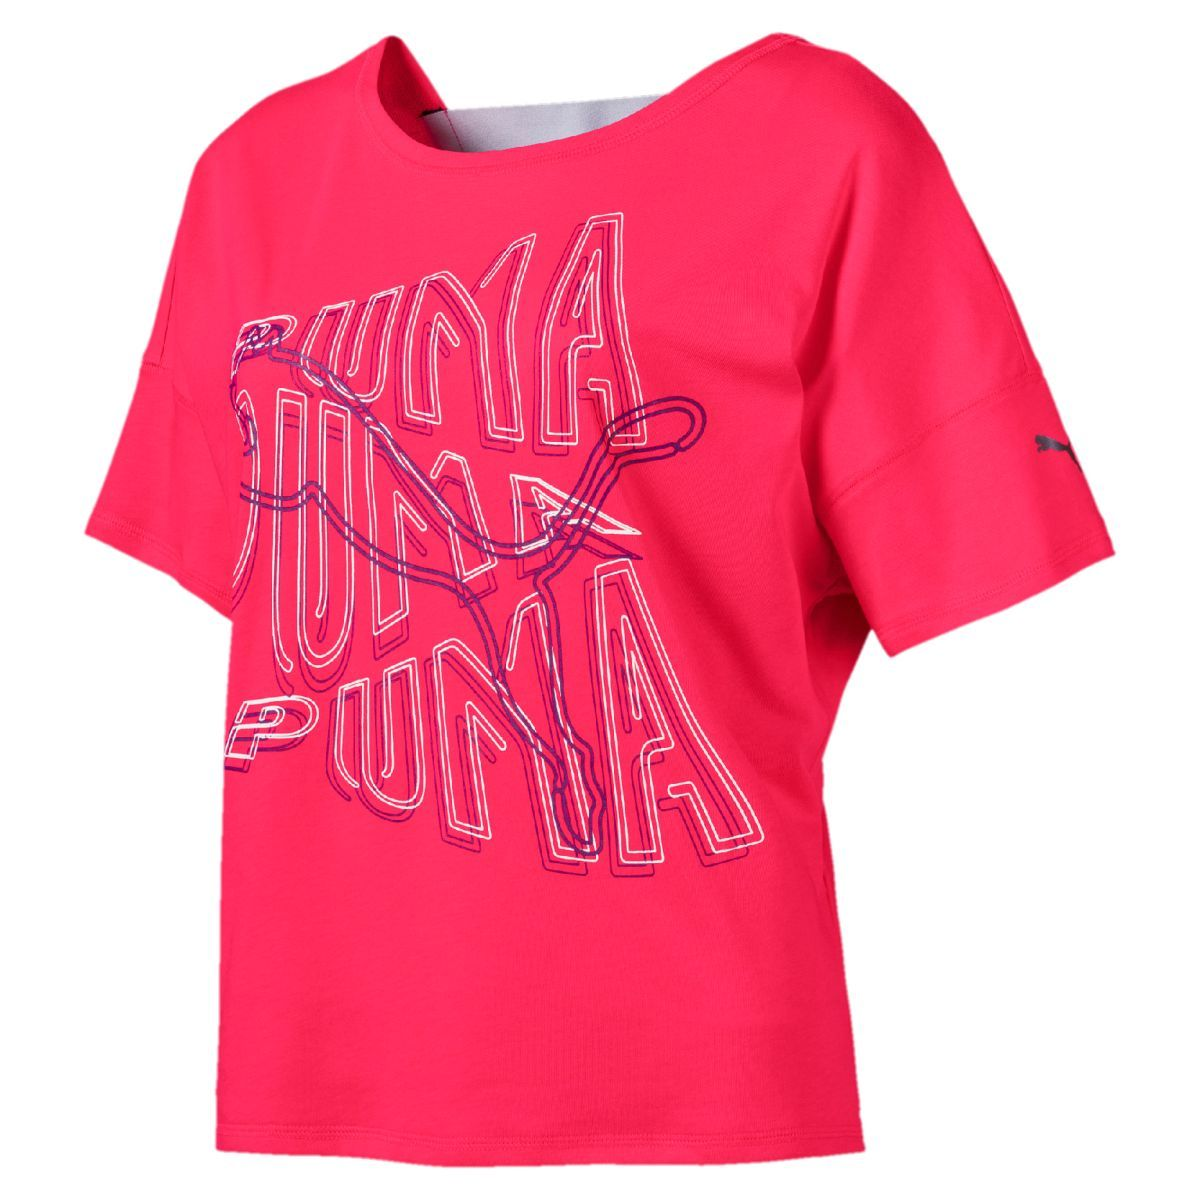 Puma HIT Feel It Tee - Nrgy Rose SP-ApparelTees-Womens Puma